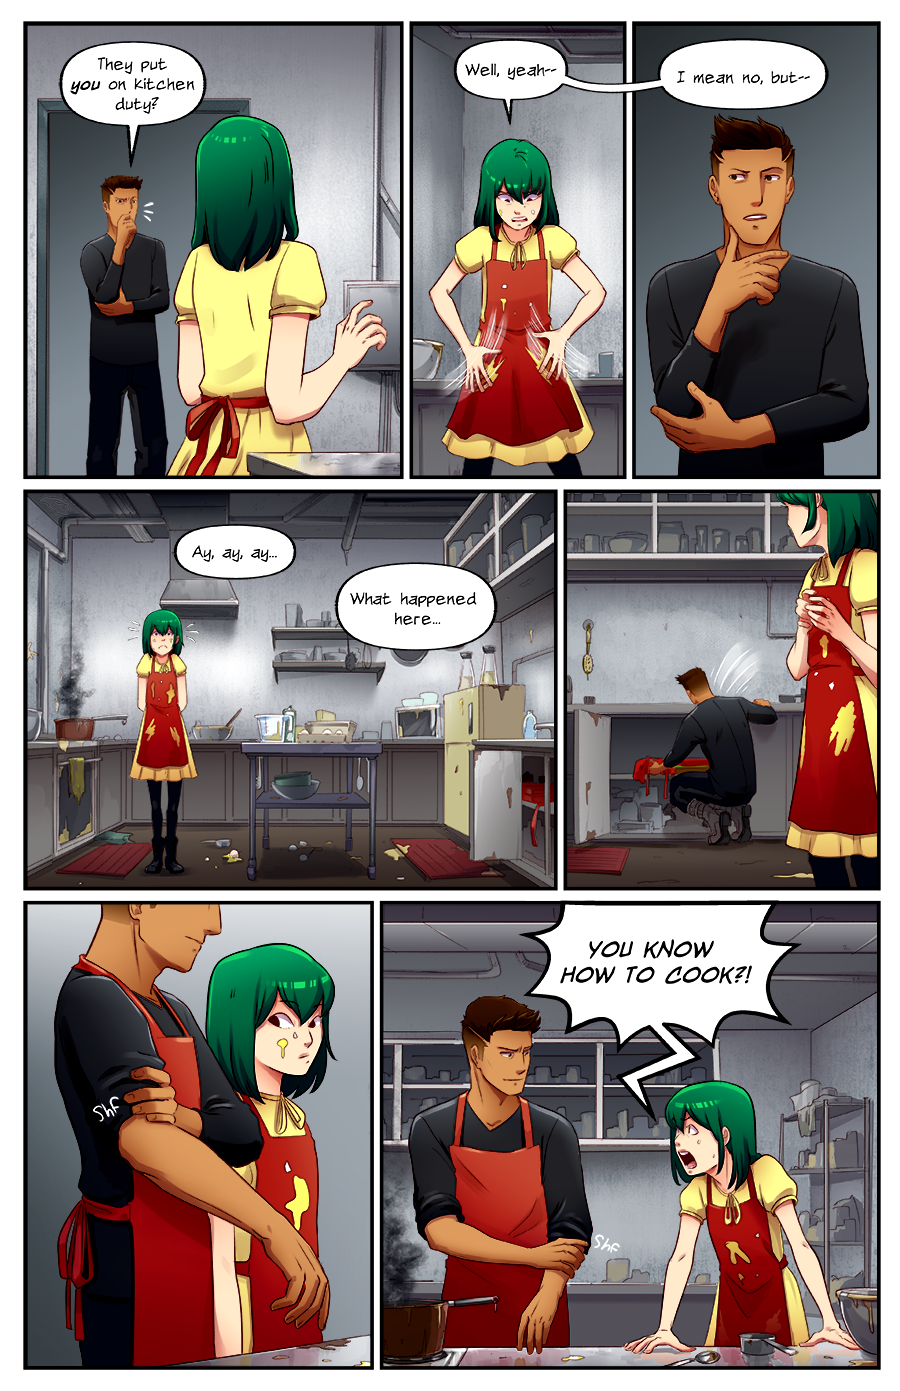 Centralia 2050 chapter 6 page 6